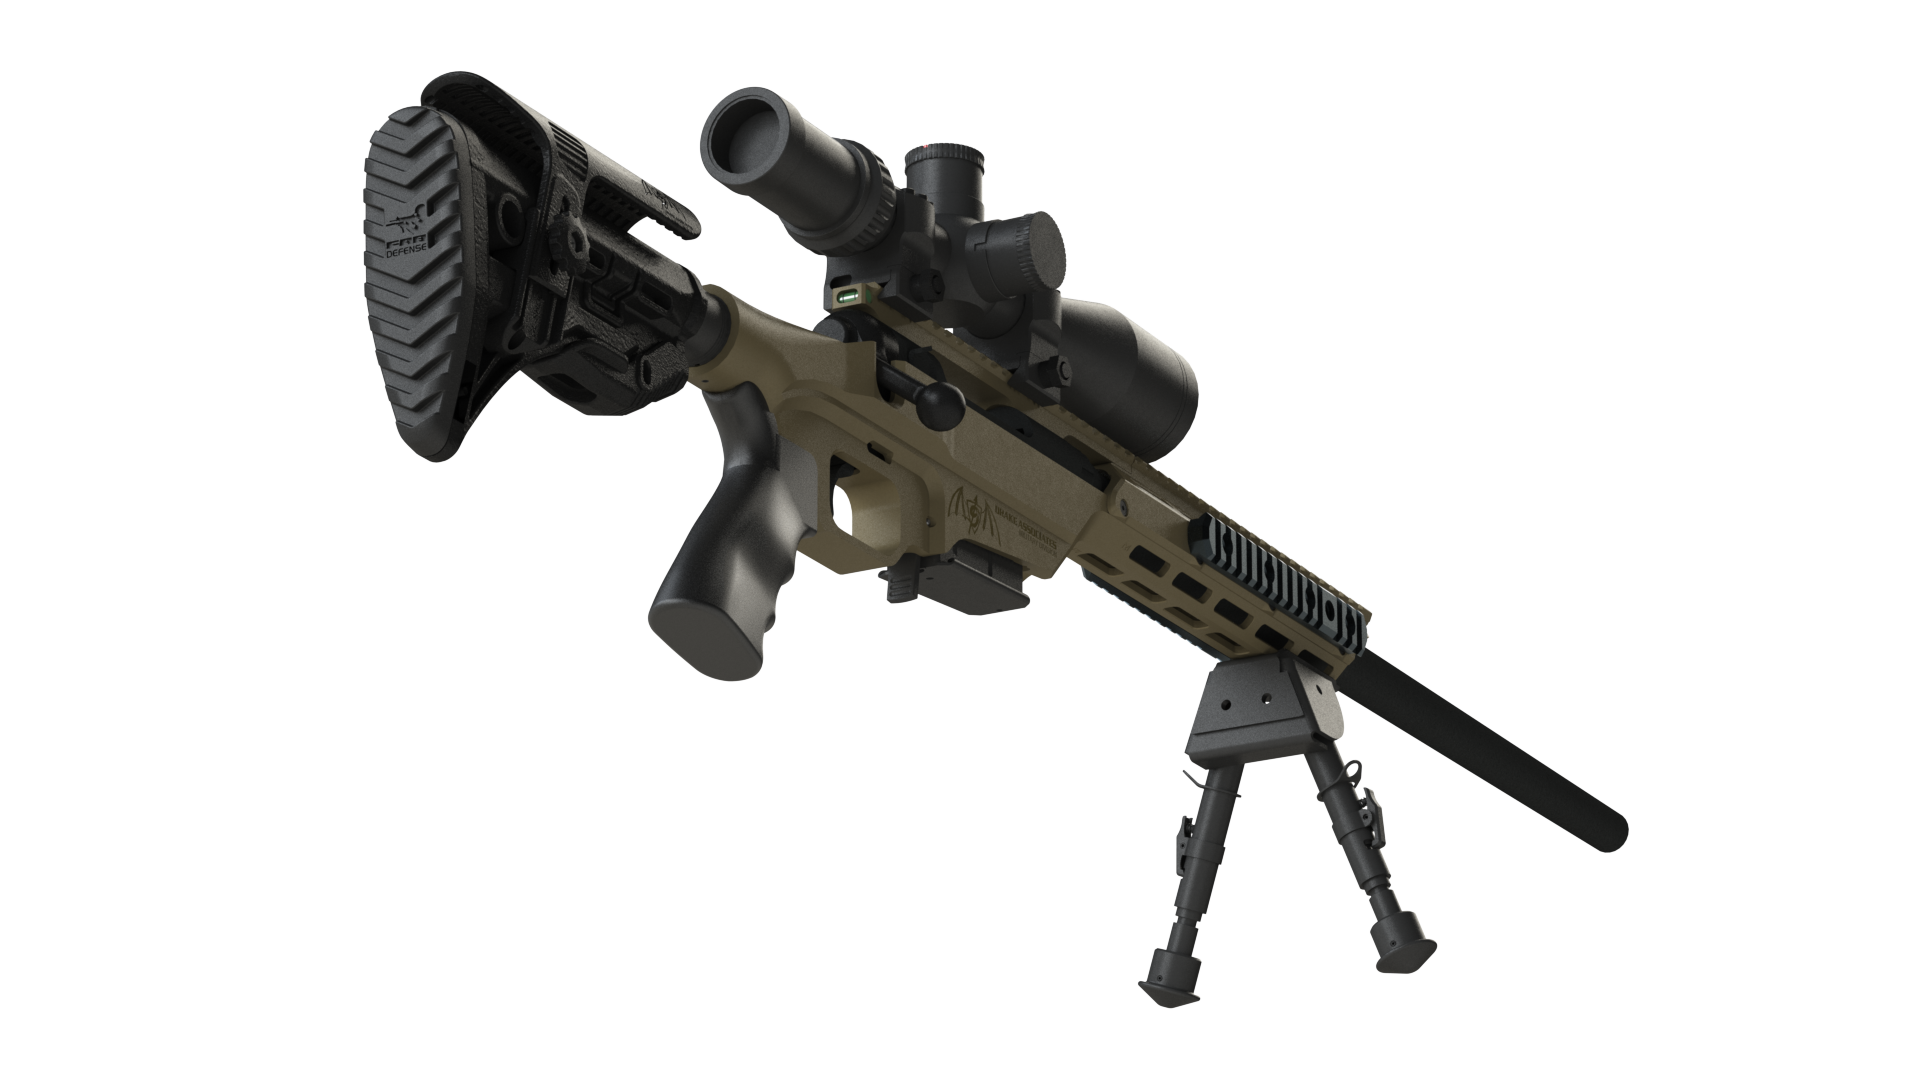 sniper rifle png images are download crazypngm crazy png images download #30249